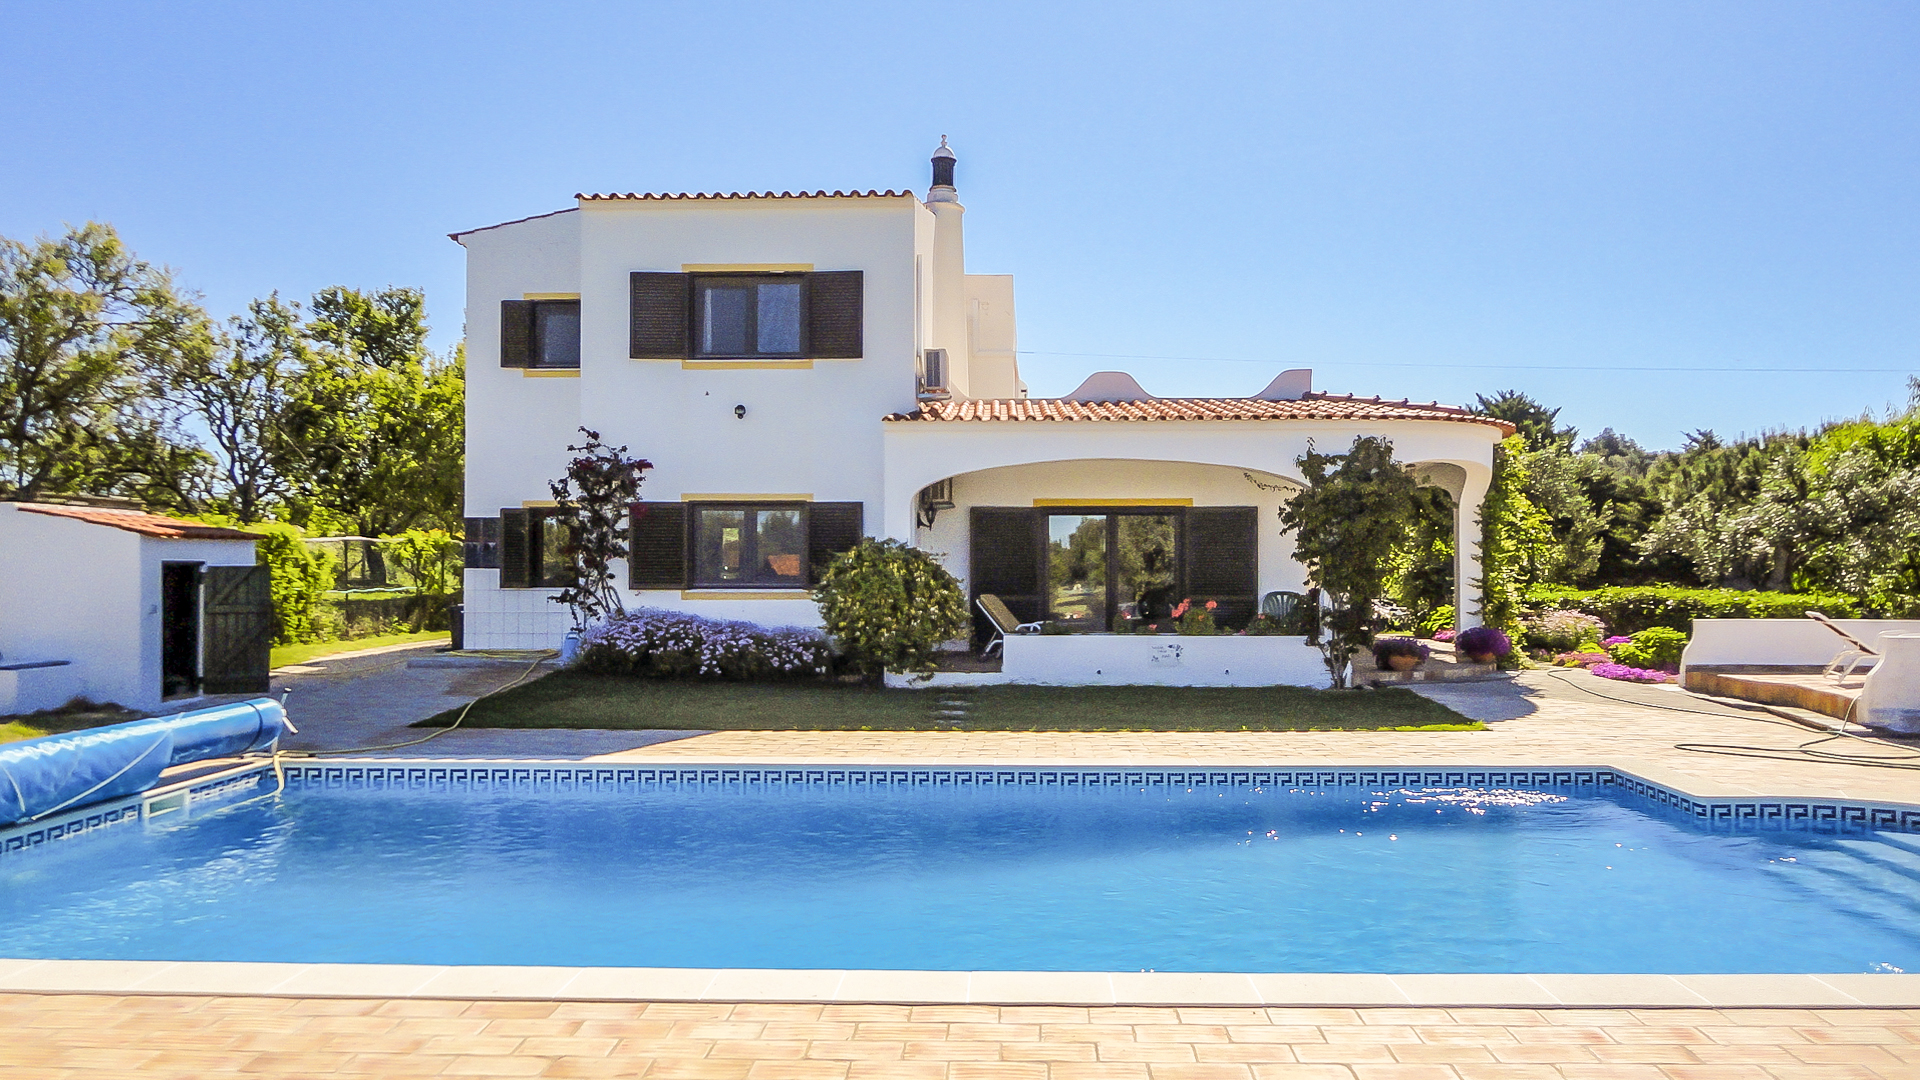 3 bedroom country villa with pool, sea and estuary views in Mexilhoeira Grande, West Algarve | S2266